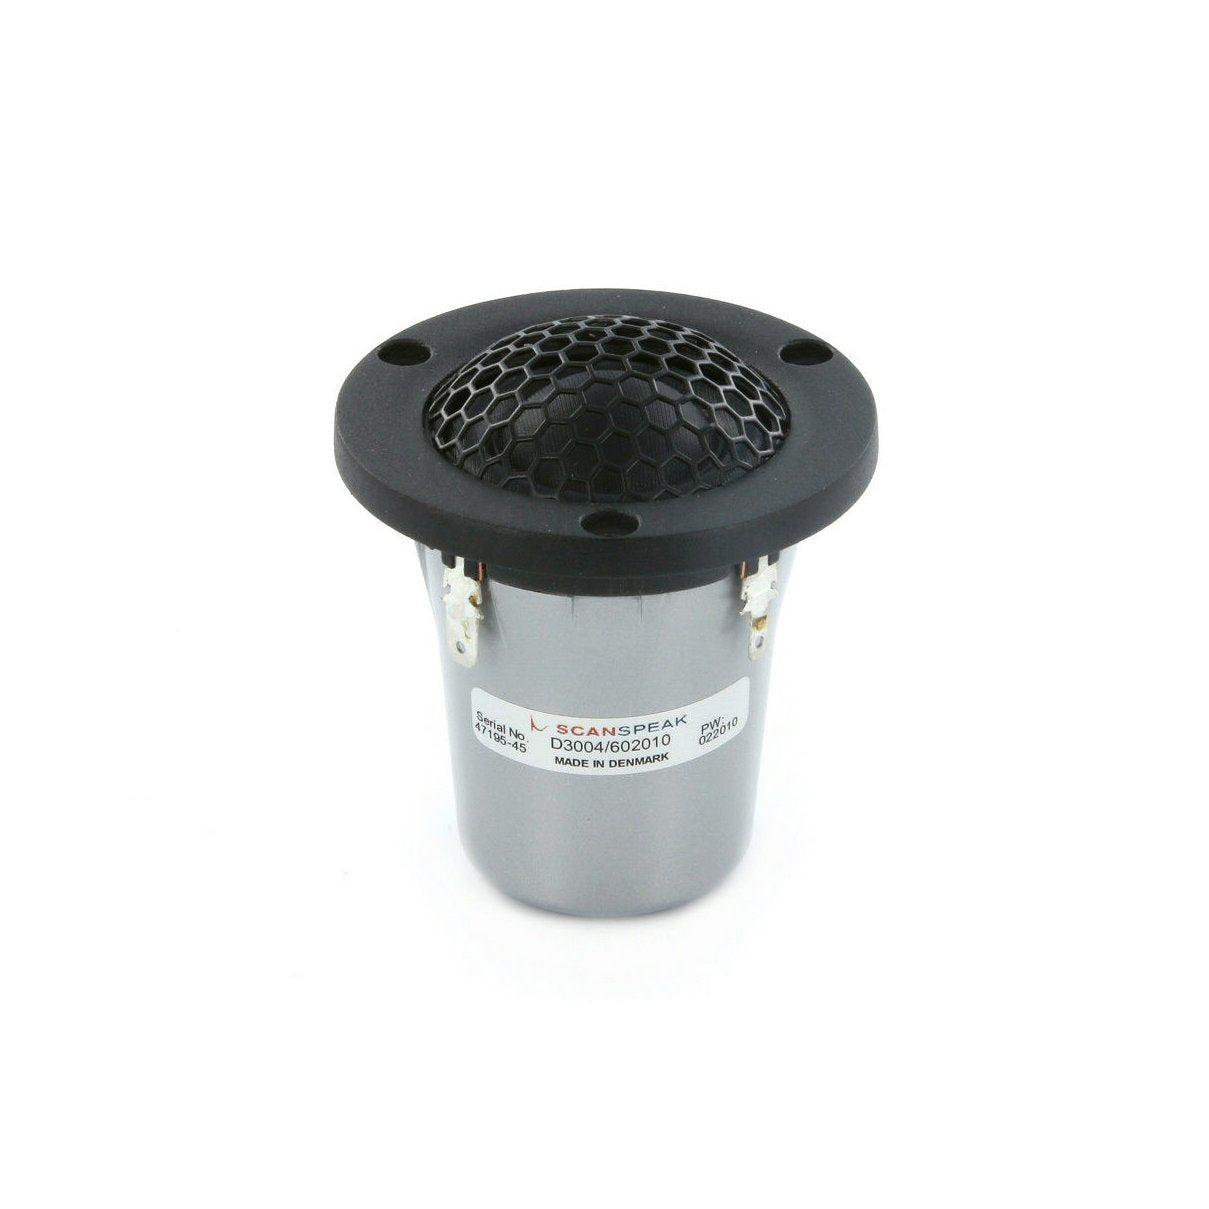 Scanspeak Illuminator D3004/602010 Tweeter